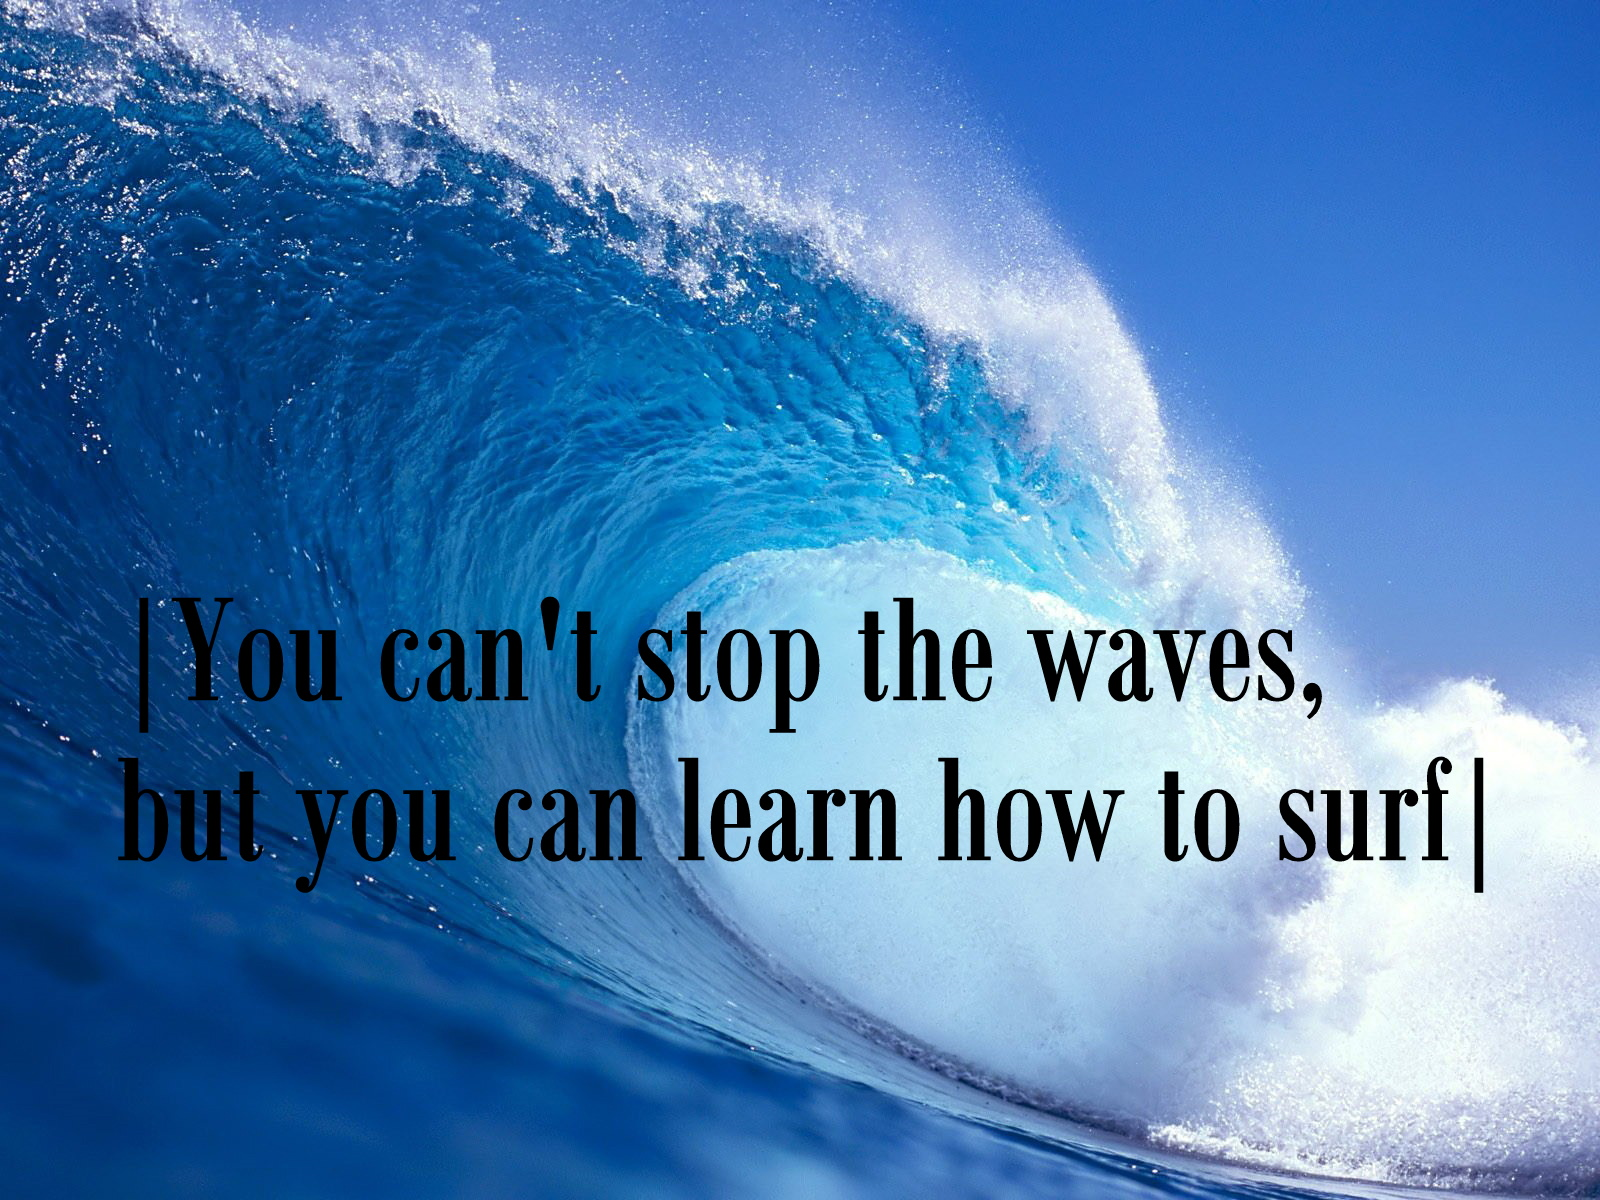 |You can't stop the waves, but you can learn how to surf|